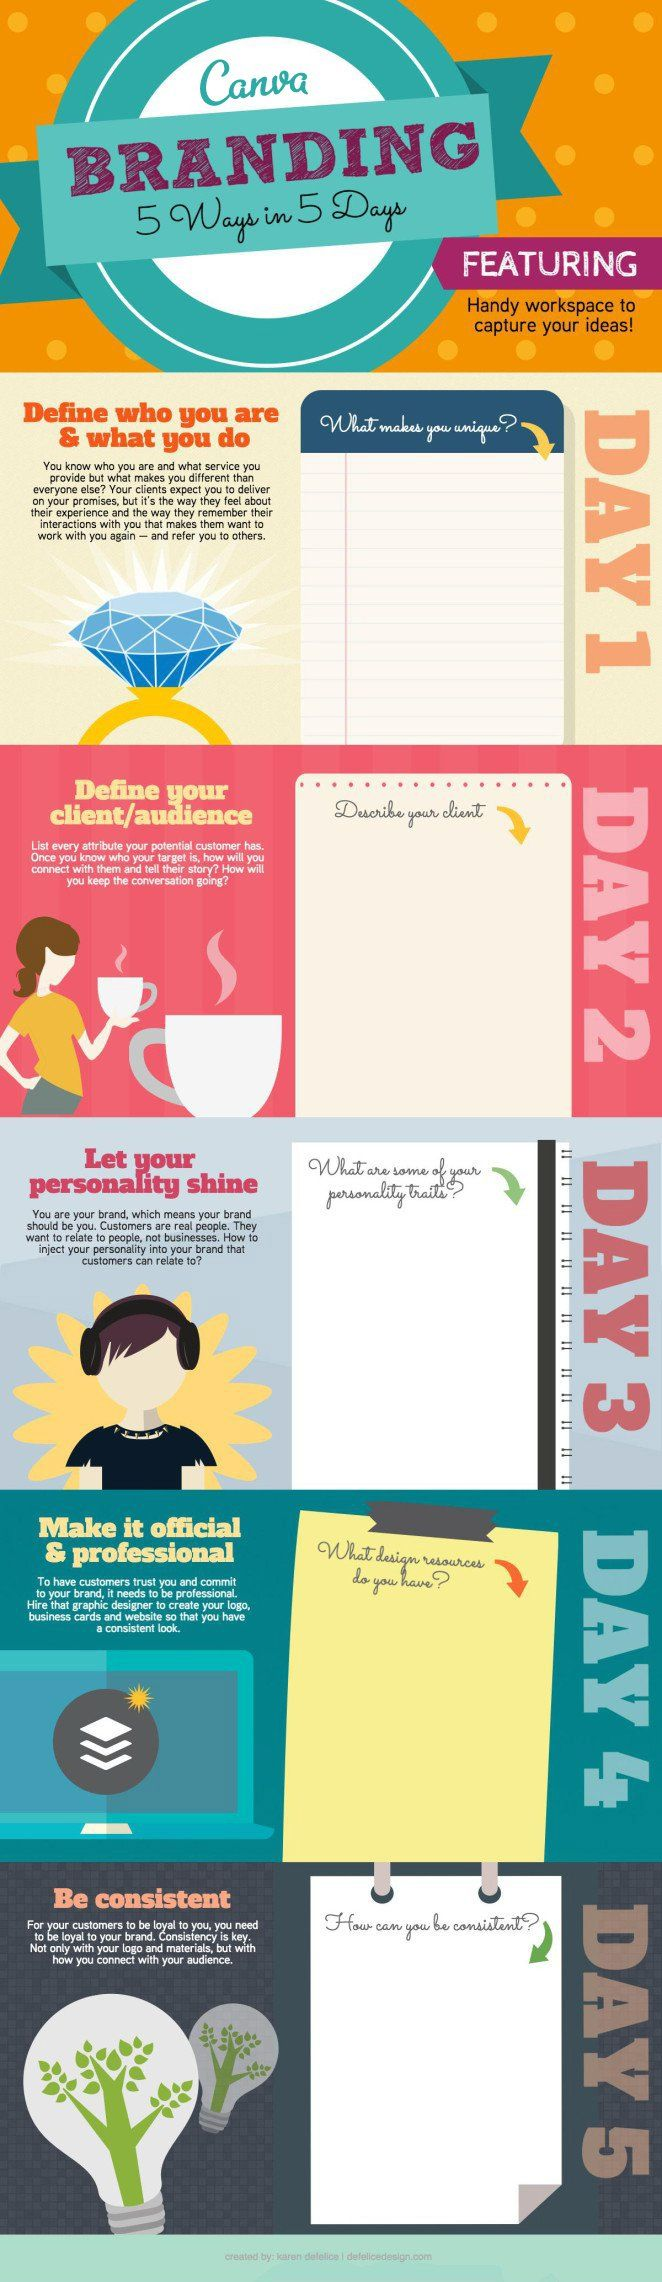 must see brand building pins marketing business and storytelling how to build a brand in 5 days tips from a designer infographic via